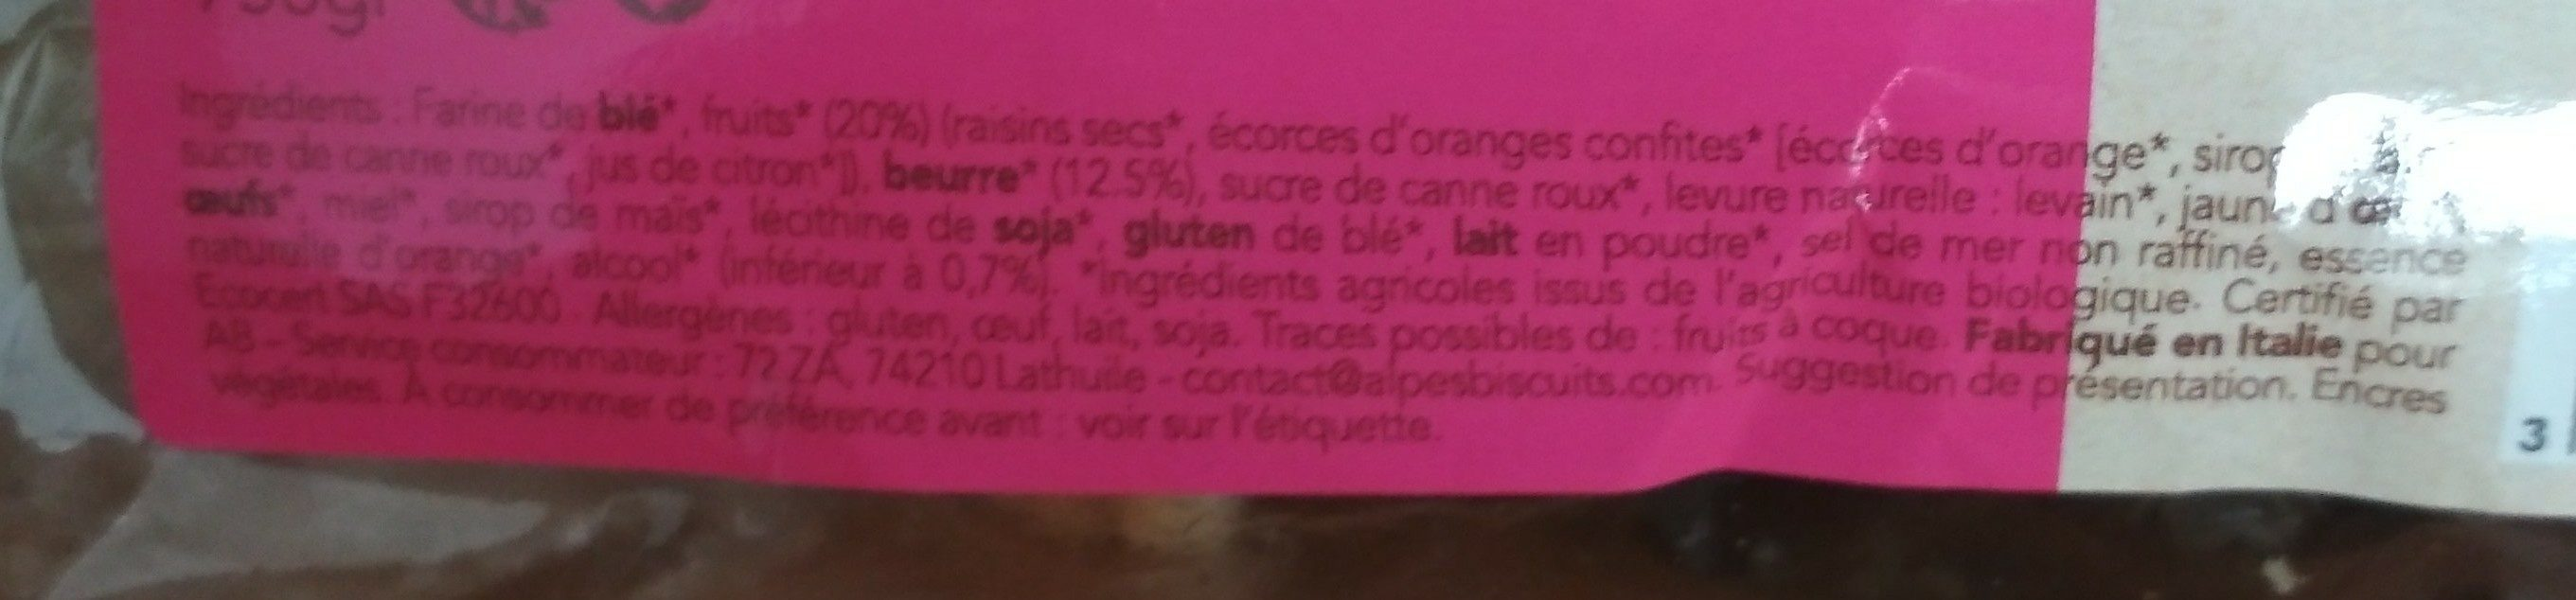 Panettone traditionnel pur beurre - Ingredients - fr